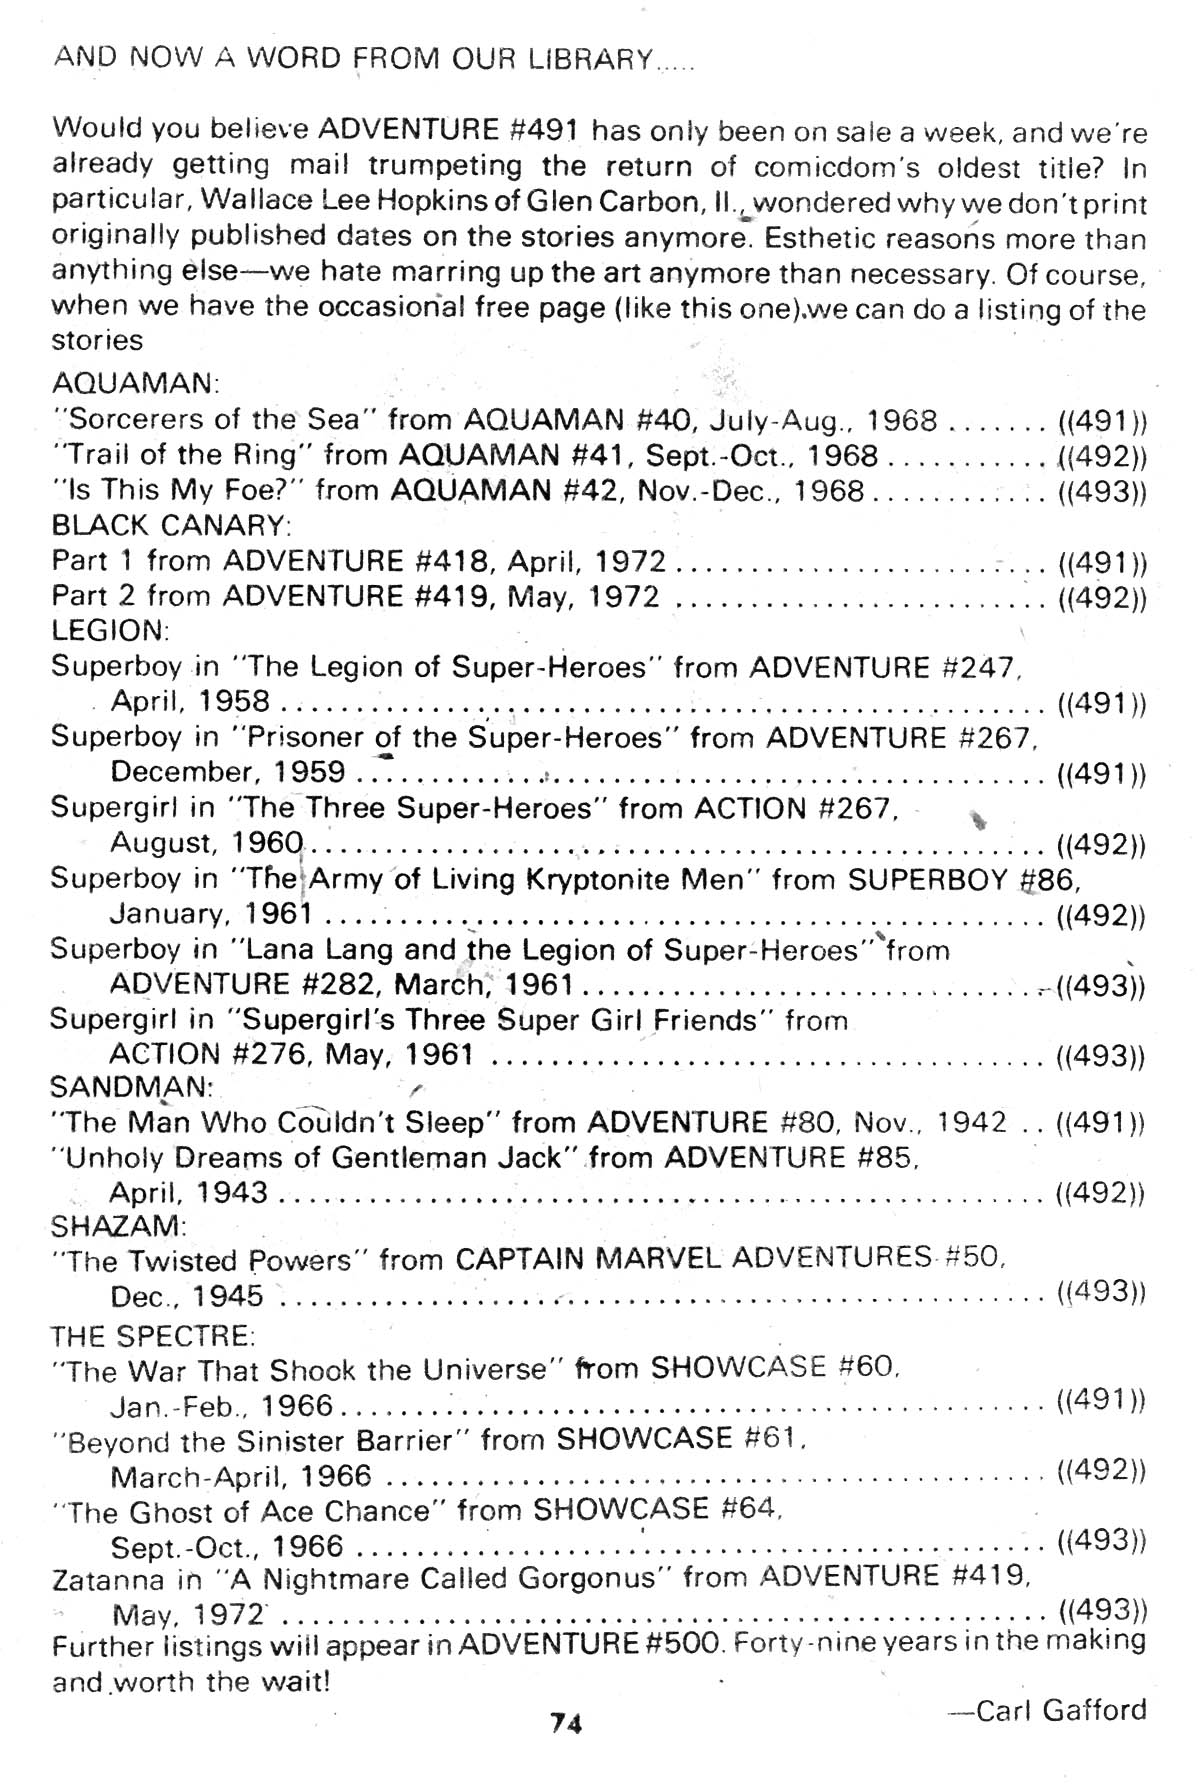 Read online Adventure Comics (1938) comic -  Issue #493 - 74